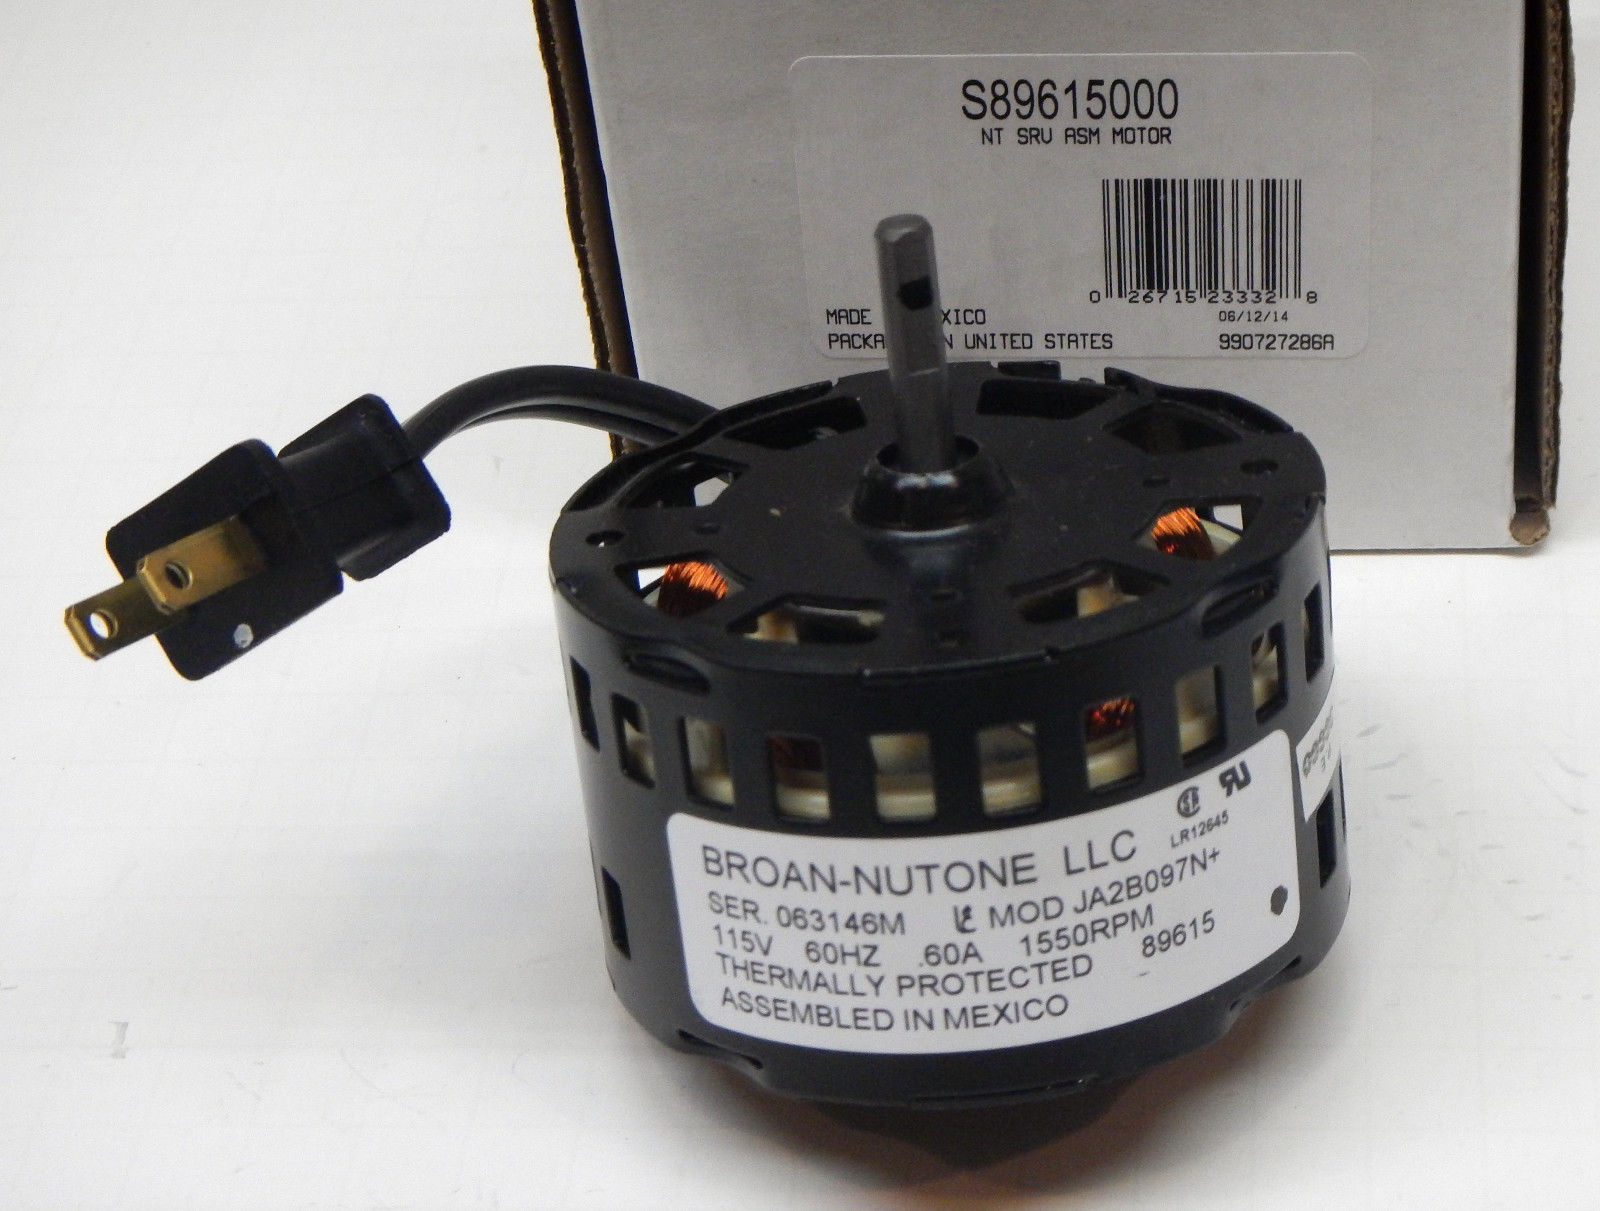 89615000 Broan Nutone Fan Motor for 89615 JA2B097N S89615000 115 Volts 1550  RPM   Walmart com. 89615000 Broan Nutone Fan Motor for 89615 JA2B097N S89615000 115